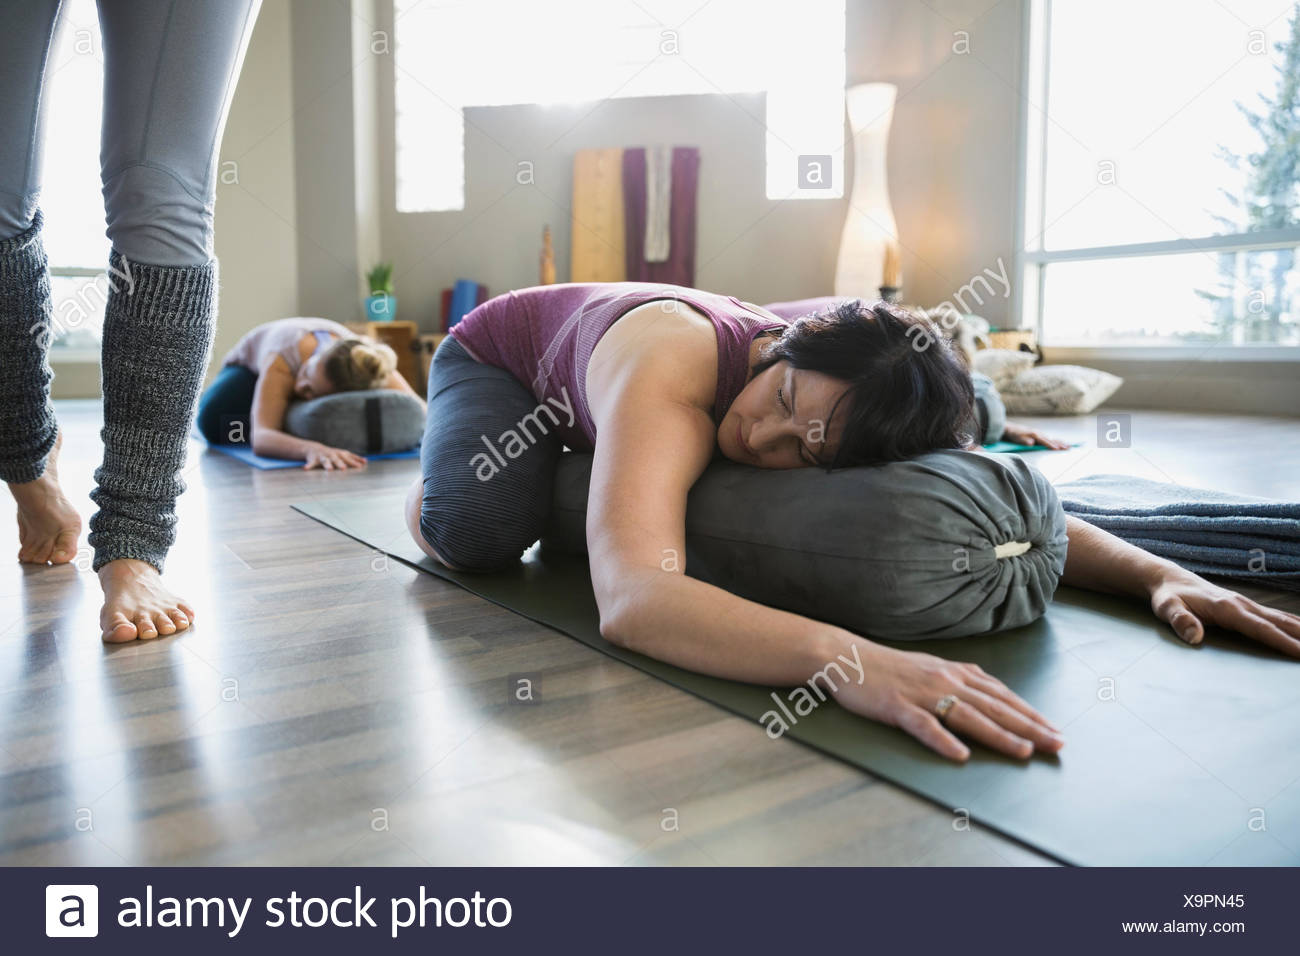 Woman using bolster in restorative yoga childs pose Stock Photo